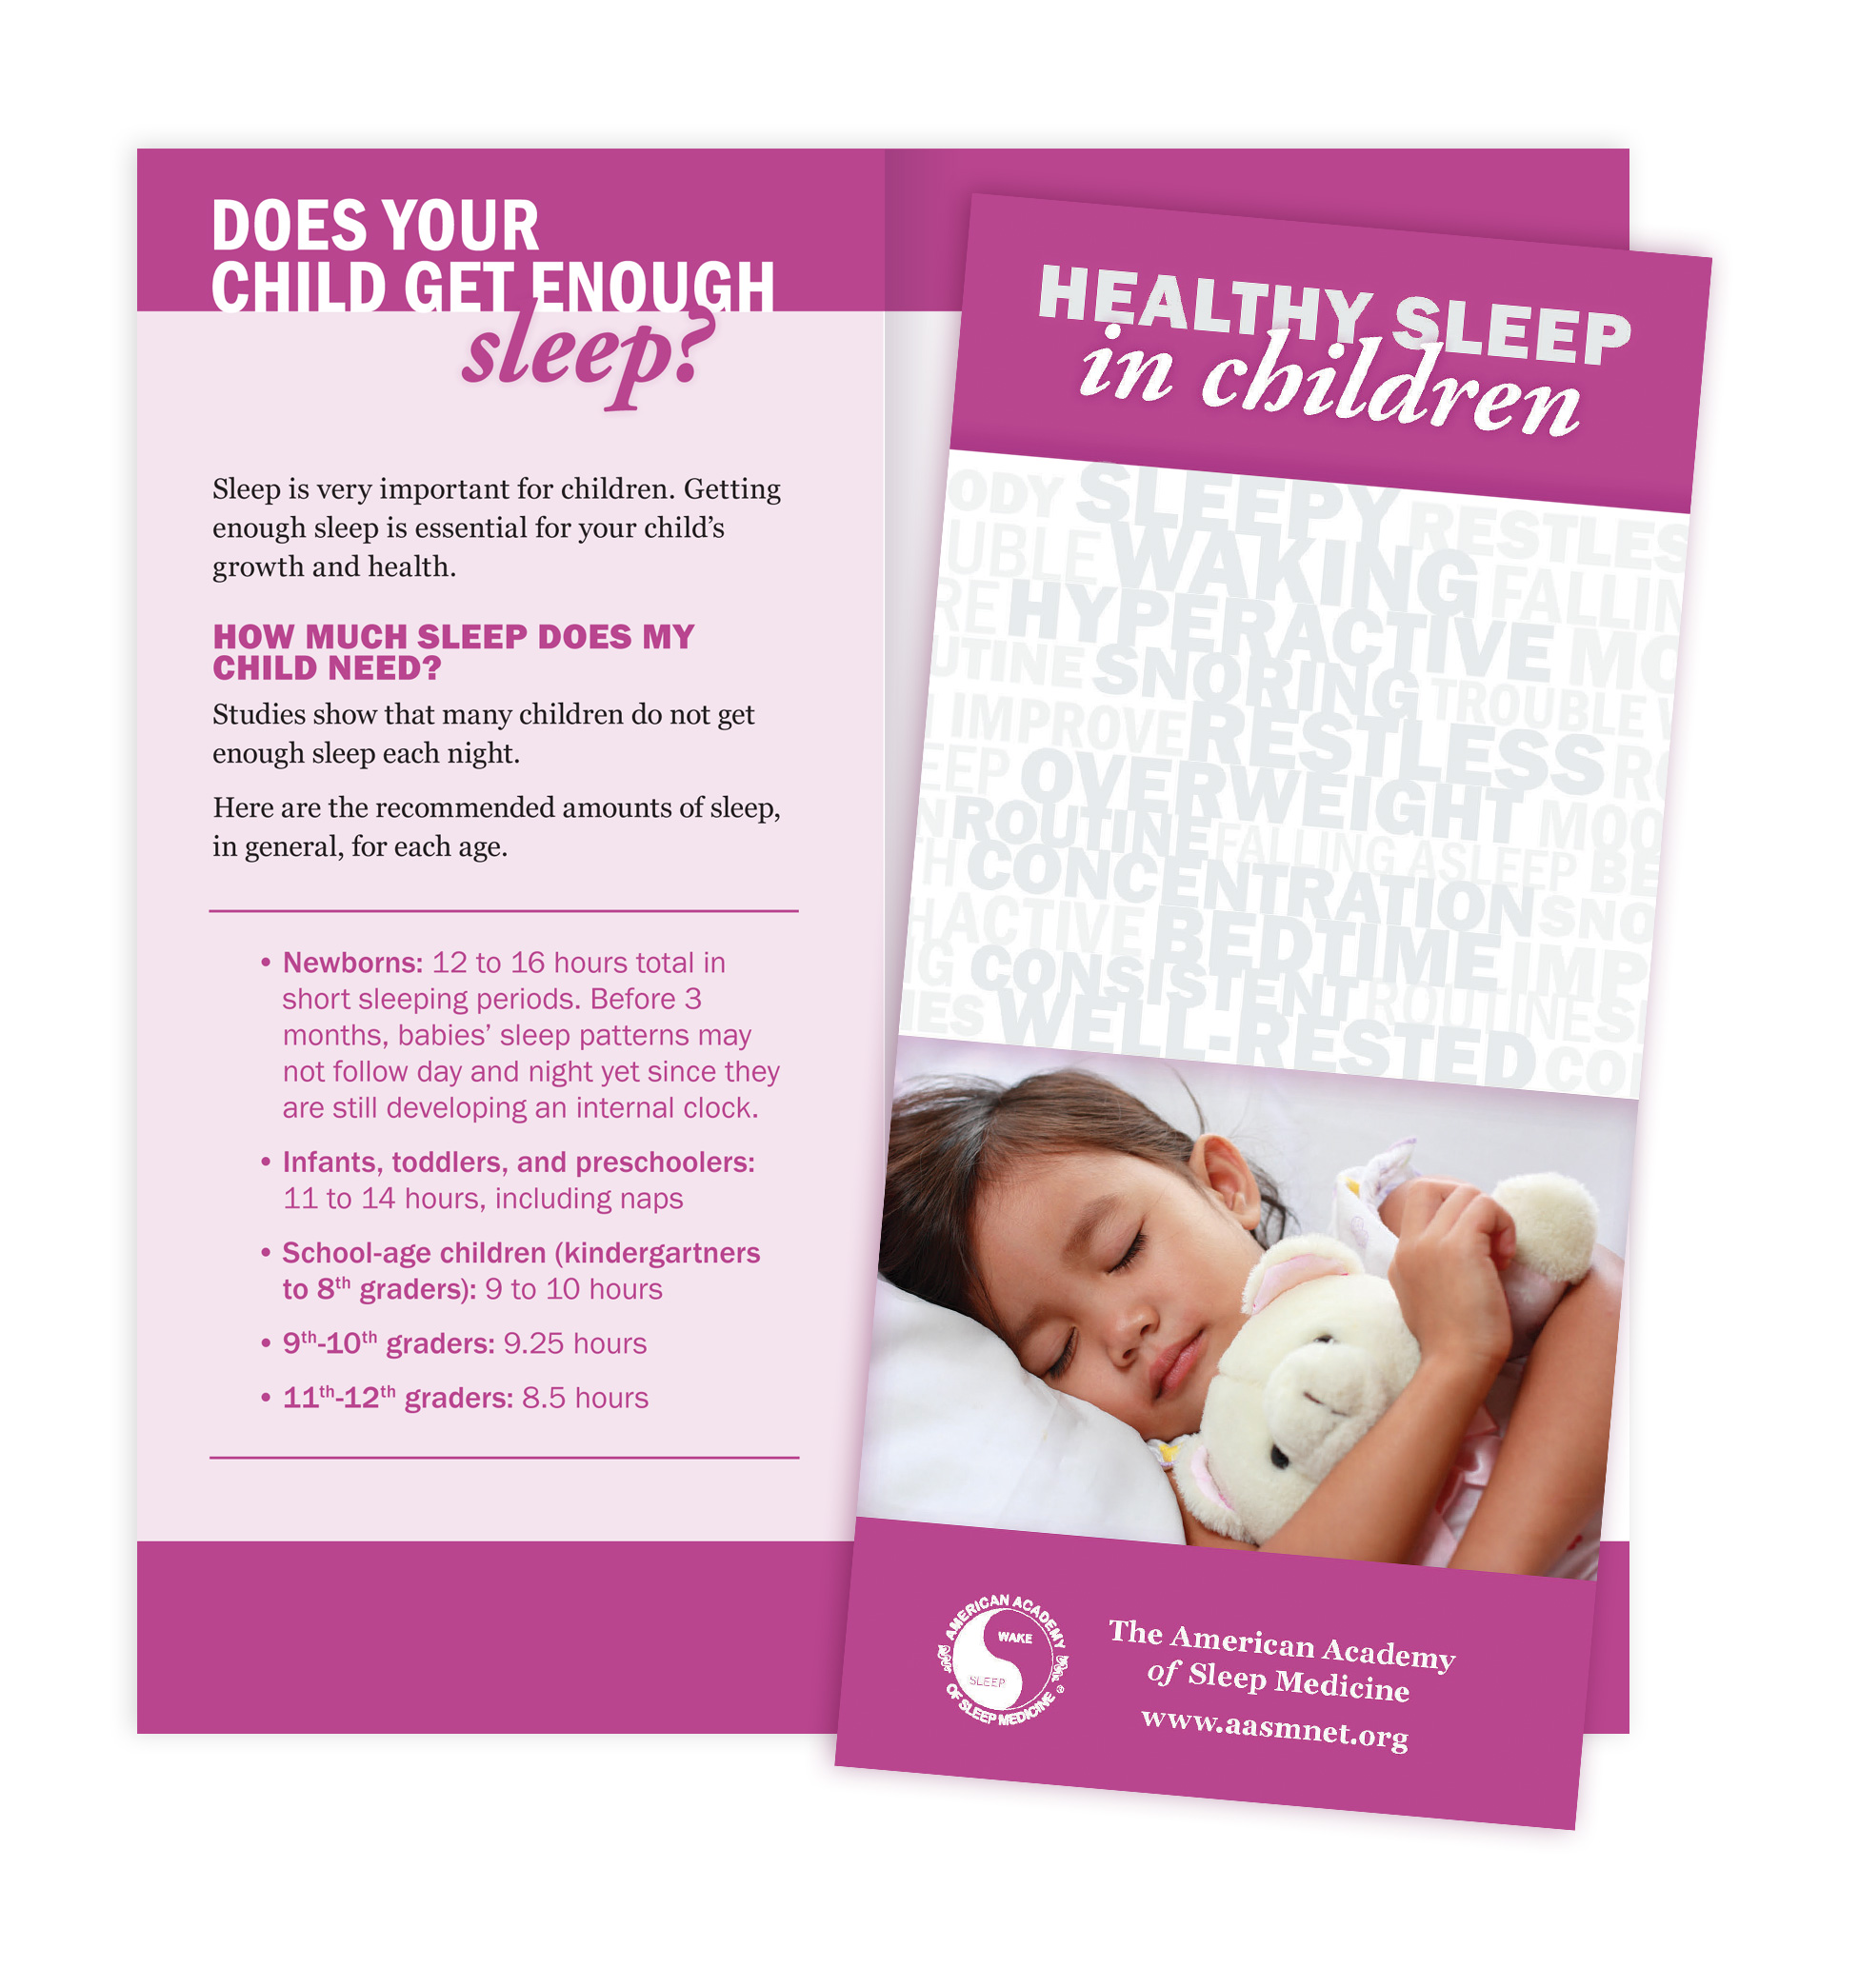 Healthy Sleep in Children Patient Education Brochures (50 brochures)